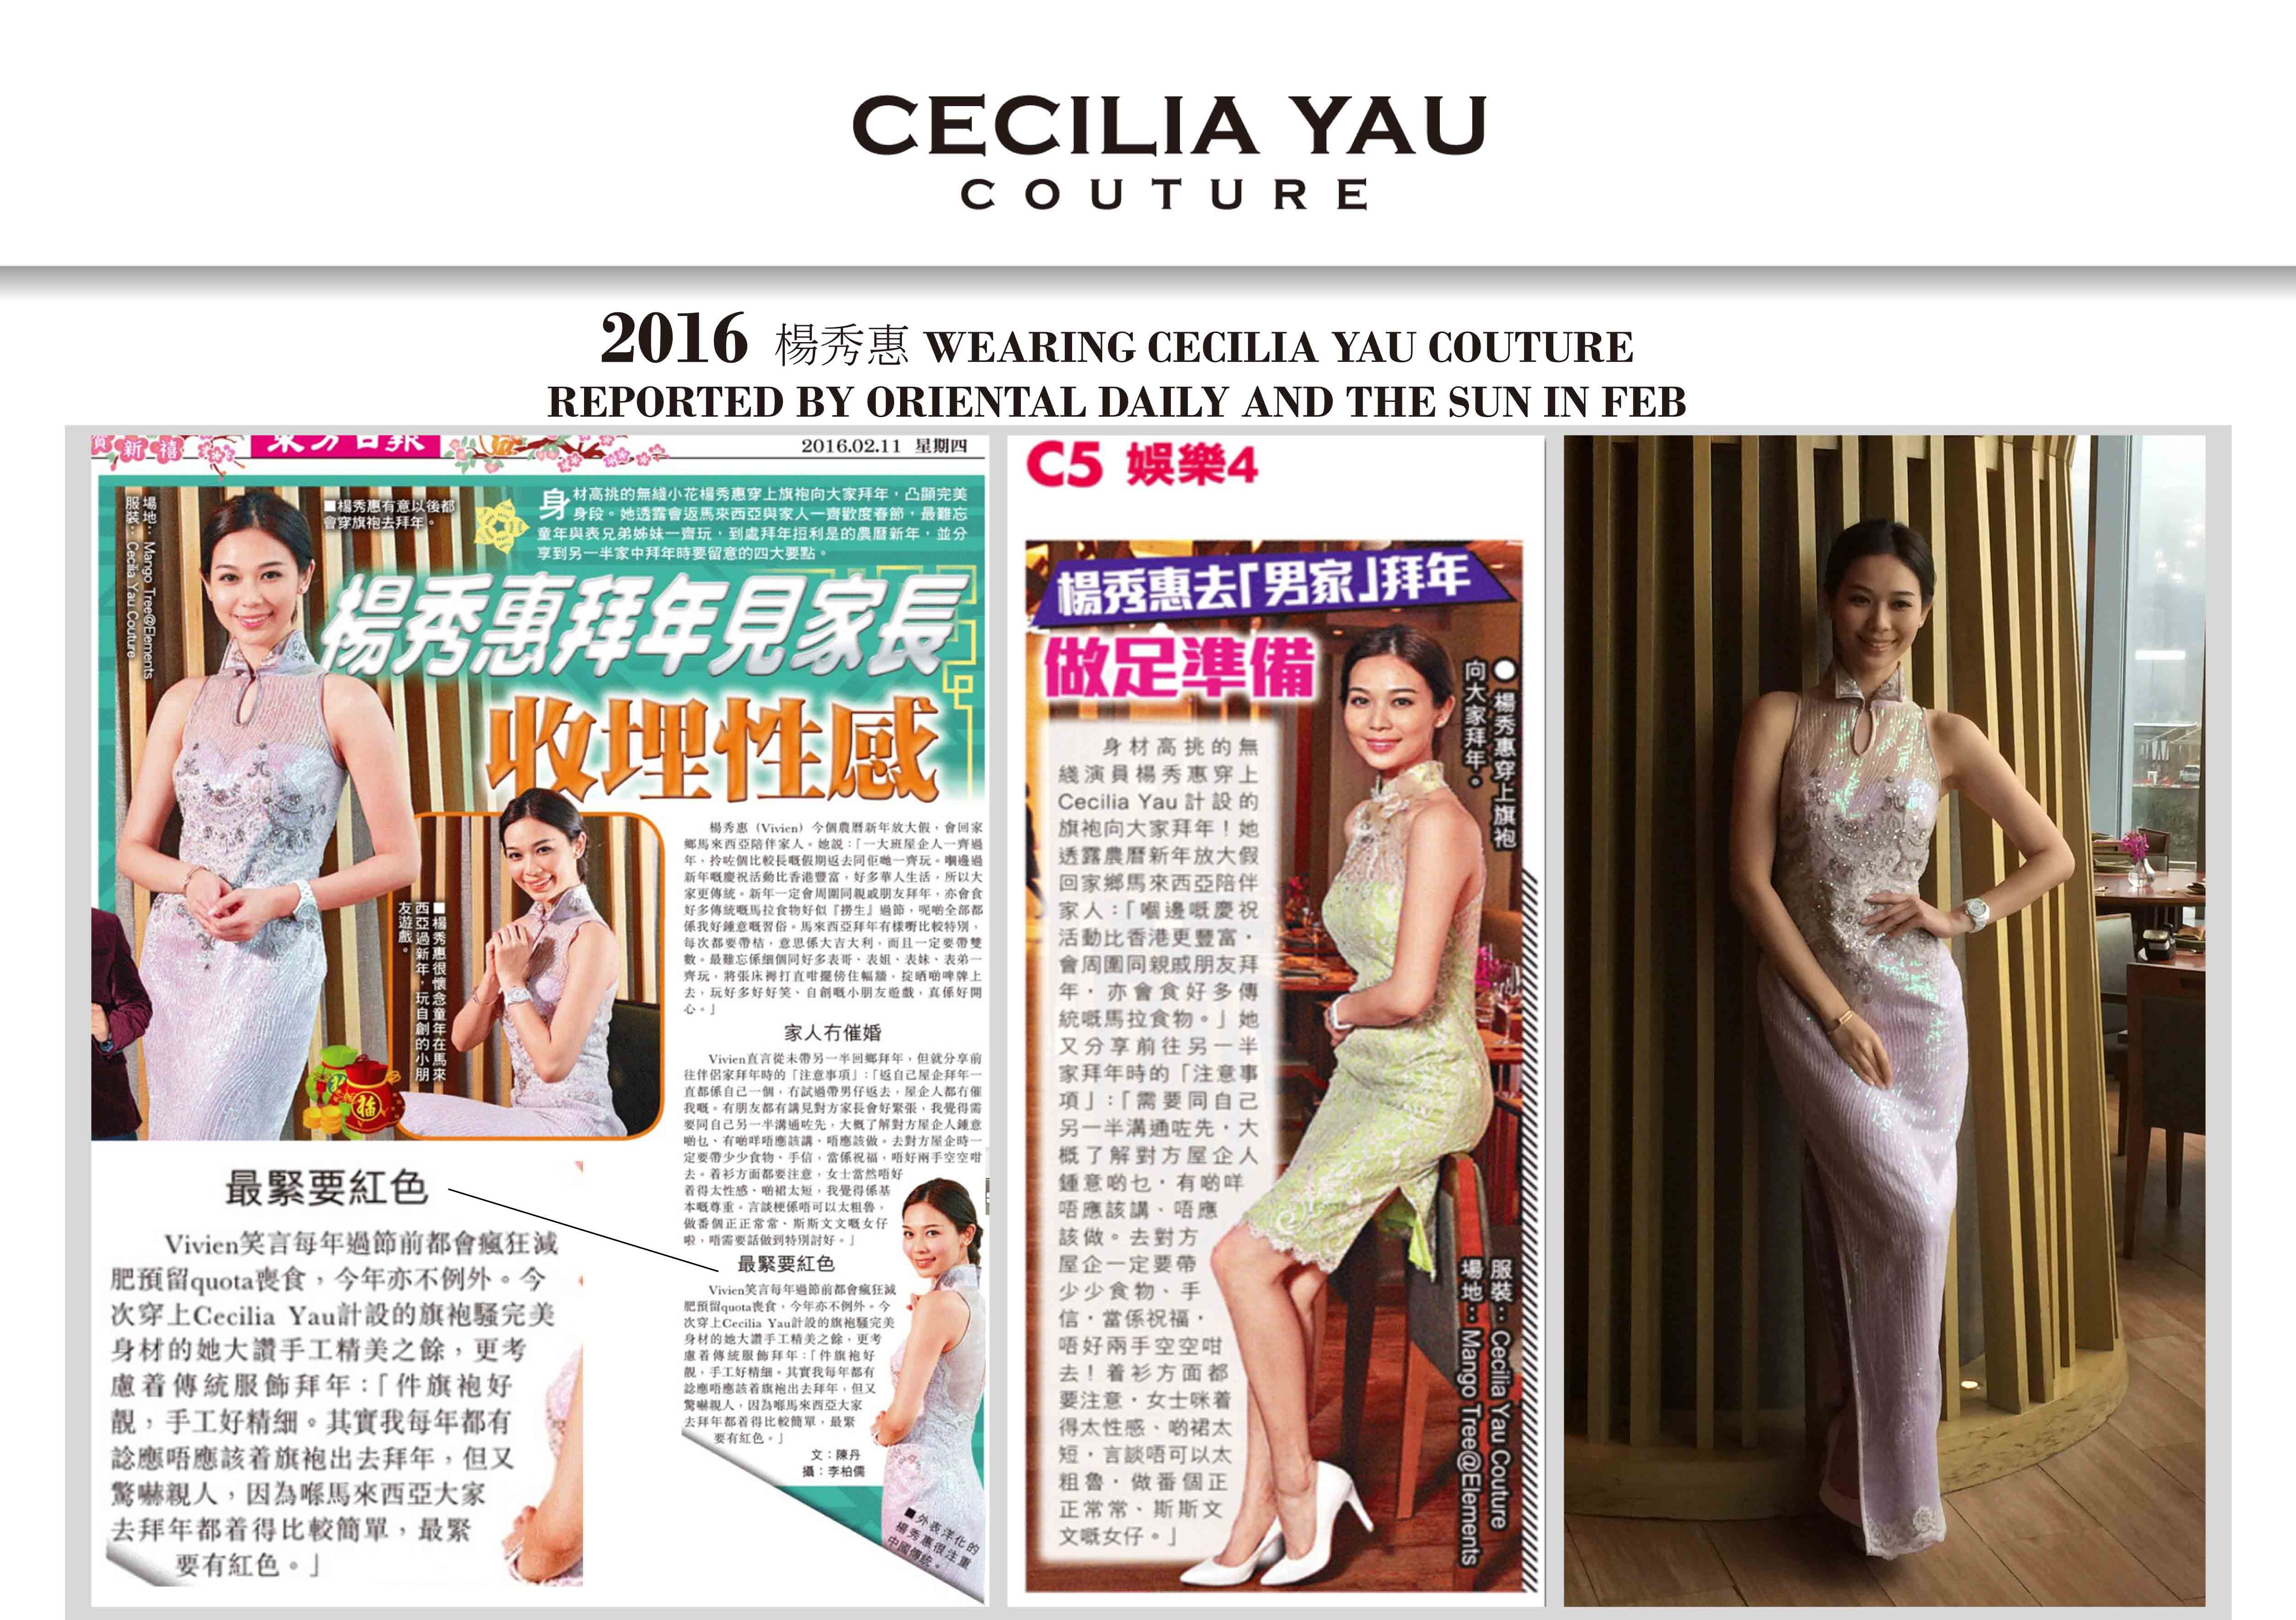 Actress Vivien in Cecilia Yau Qipao